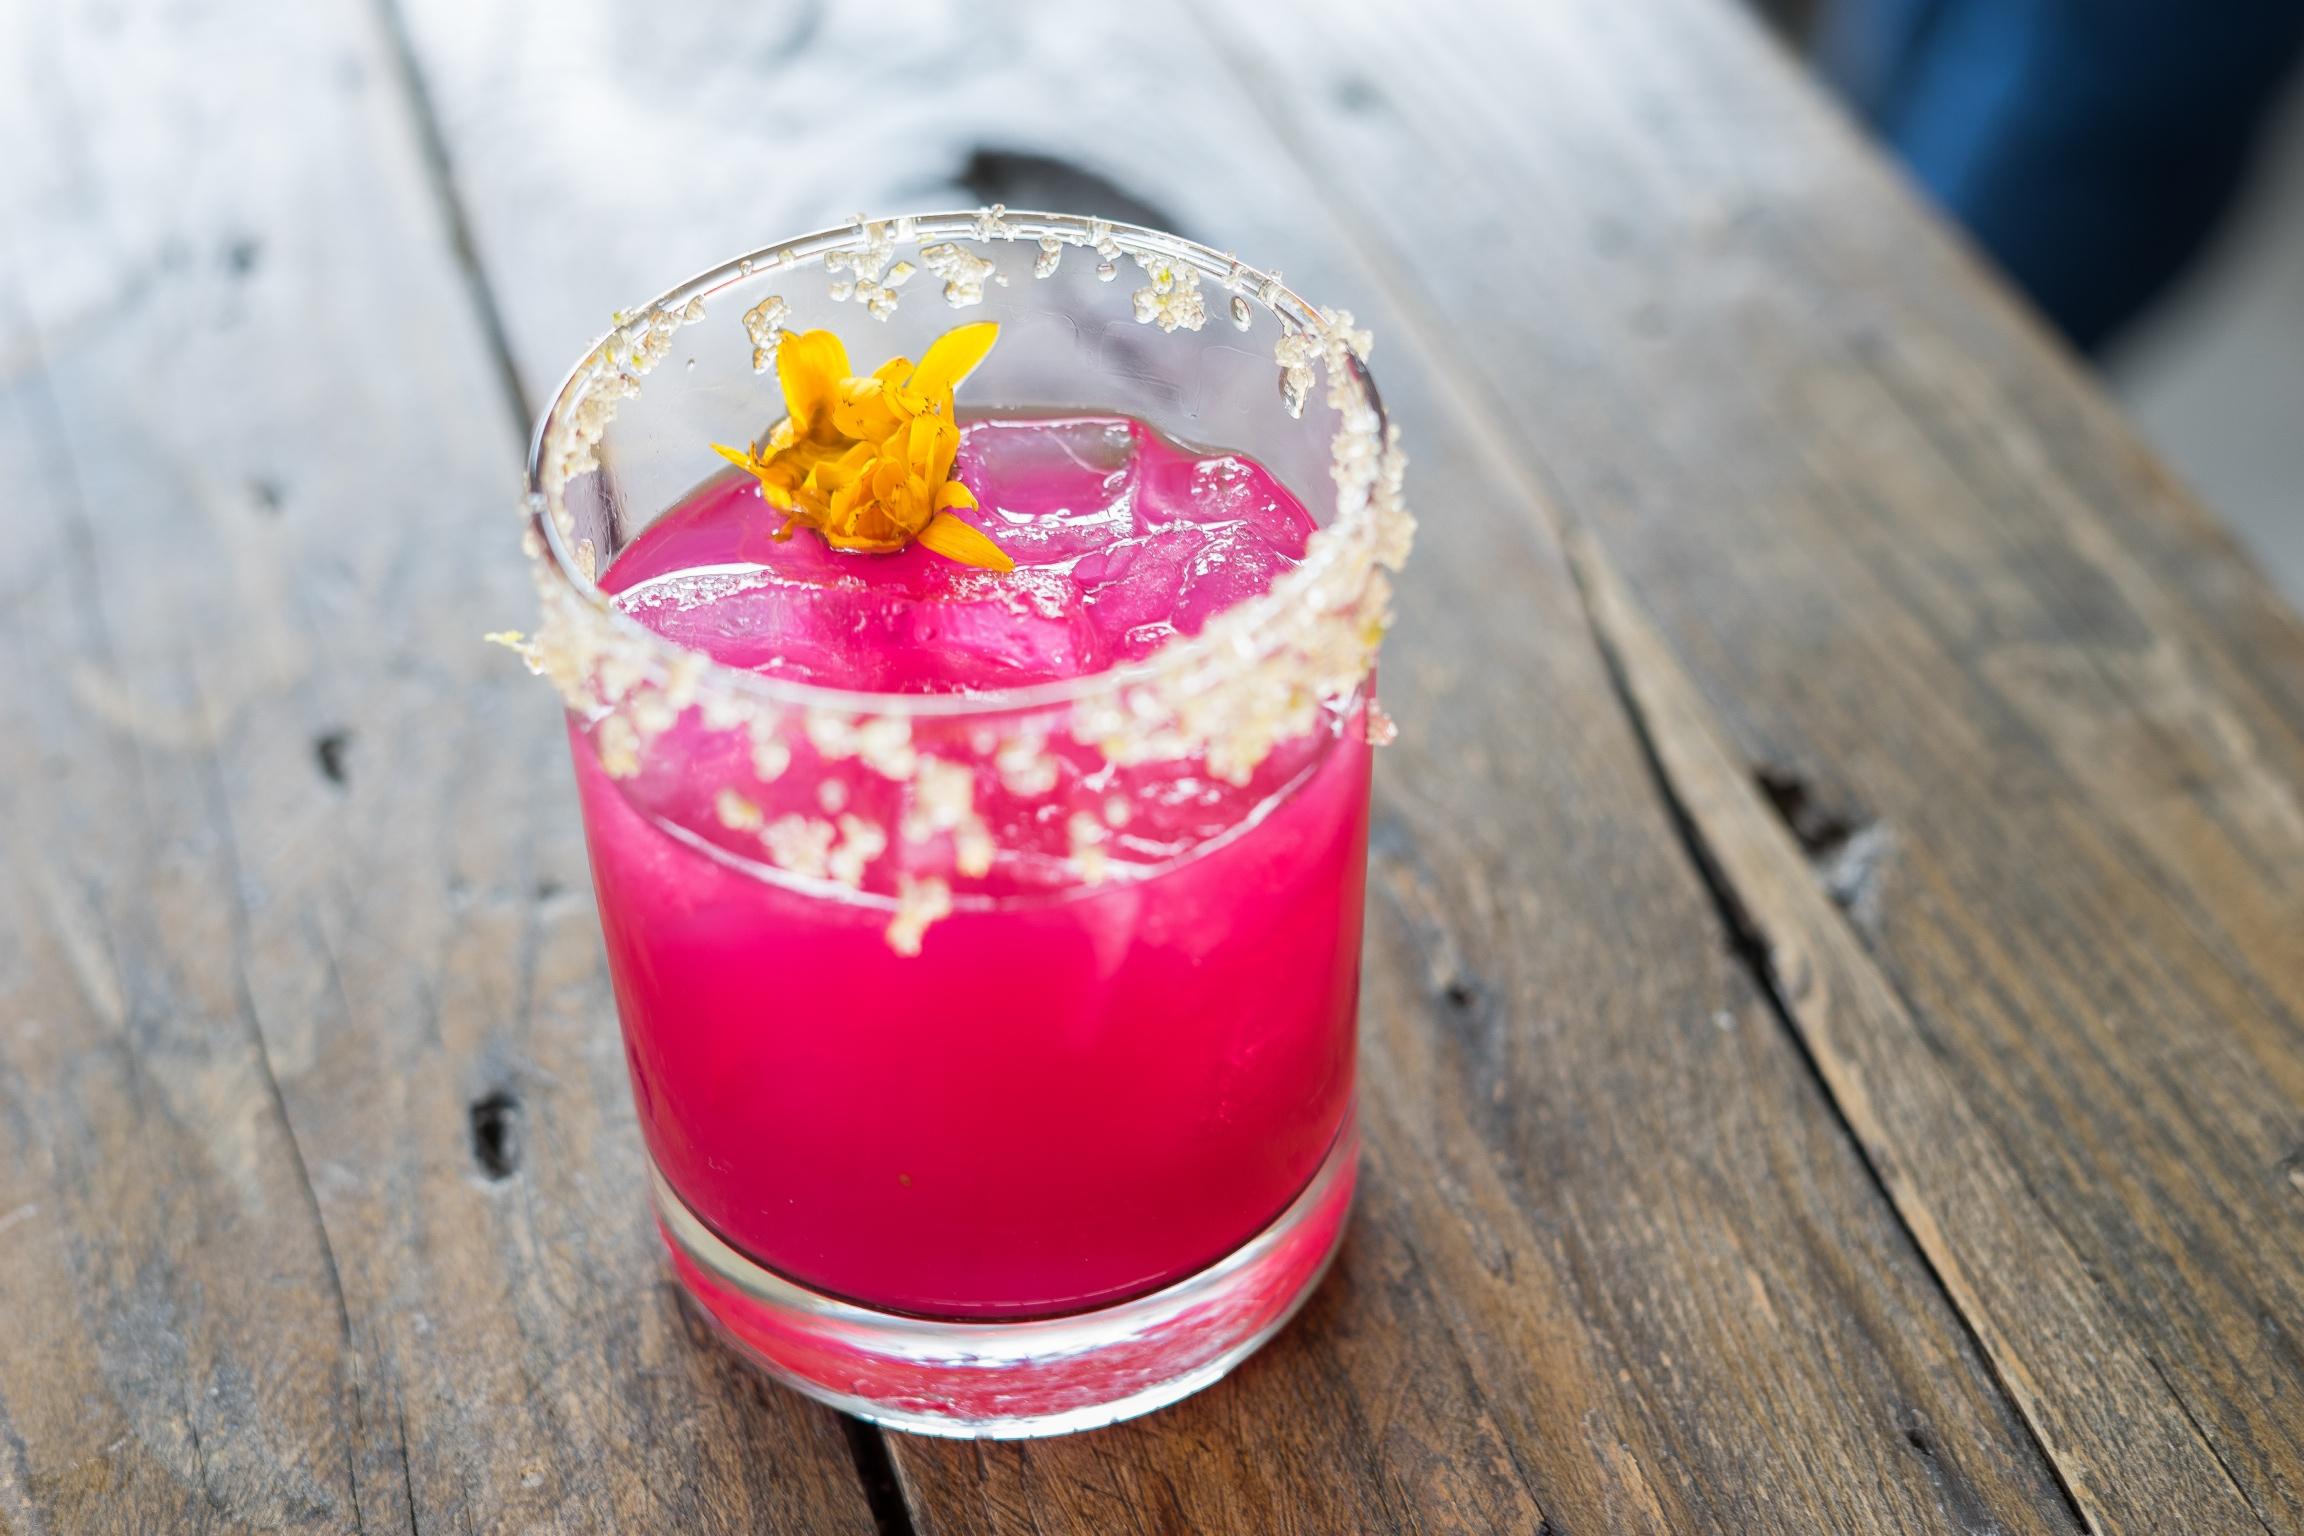 Prickly Pear Margarita at Salazar, Frogtown, Los Angeles, CA